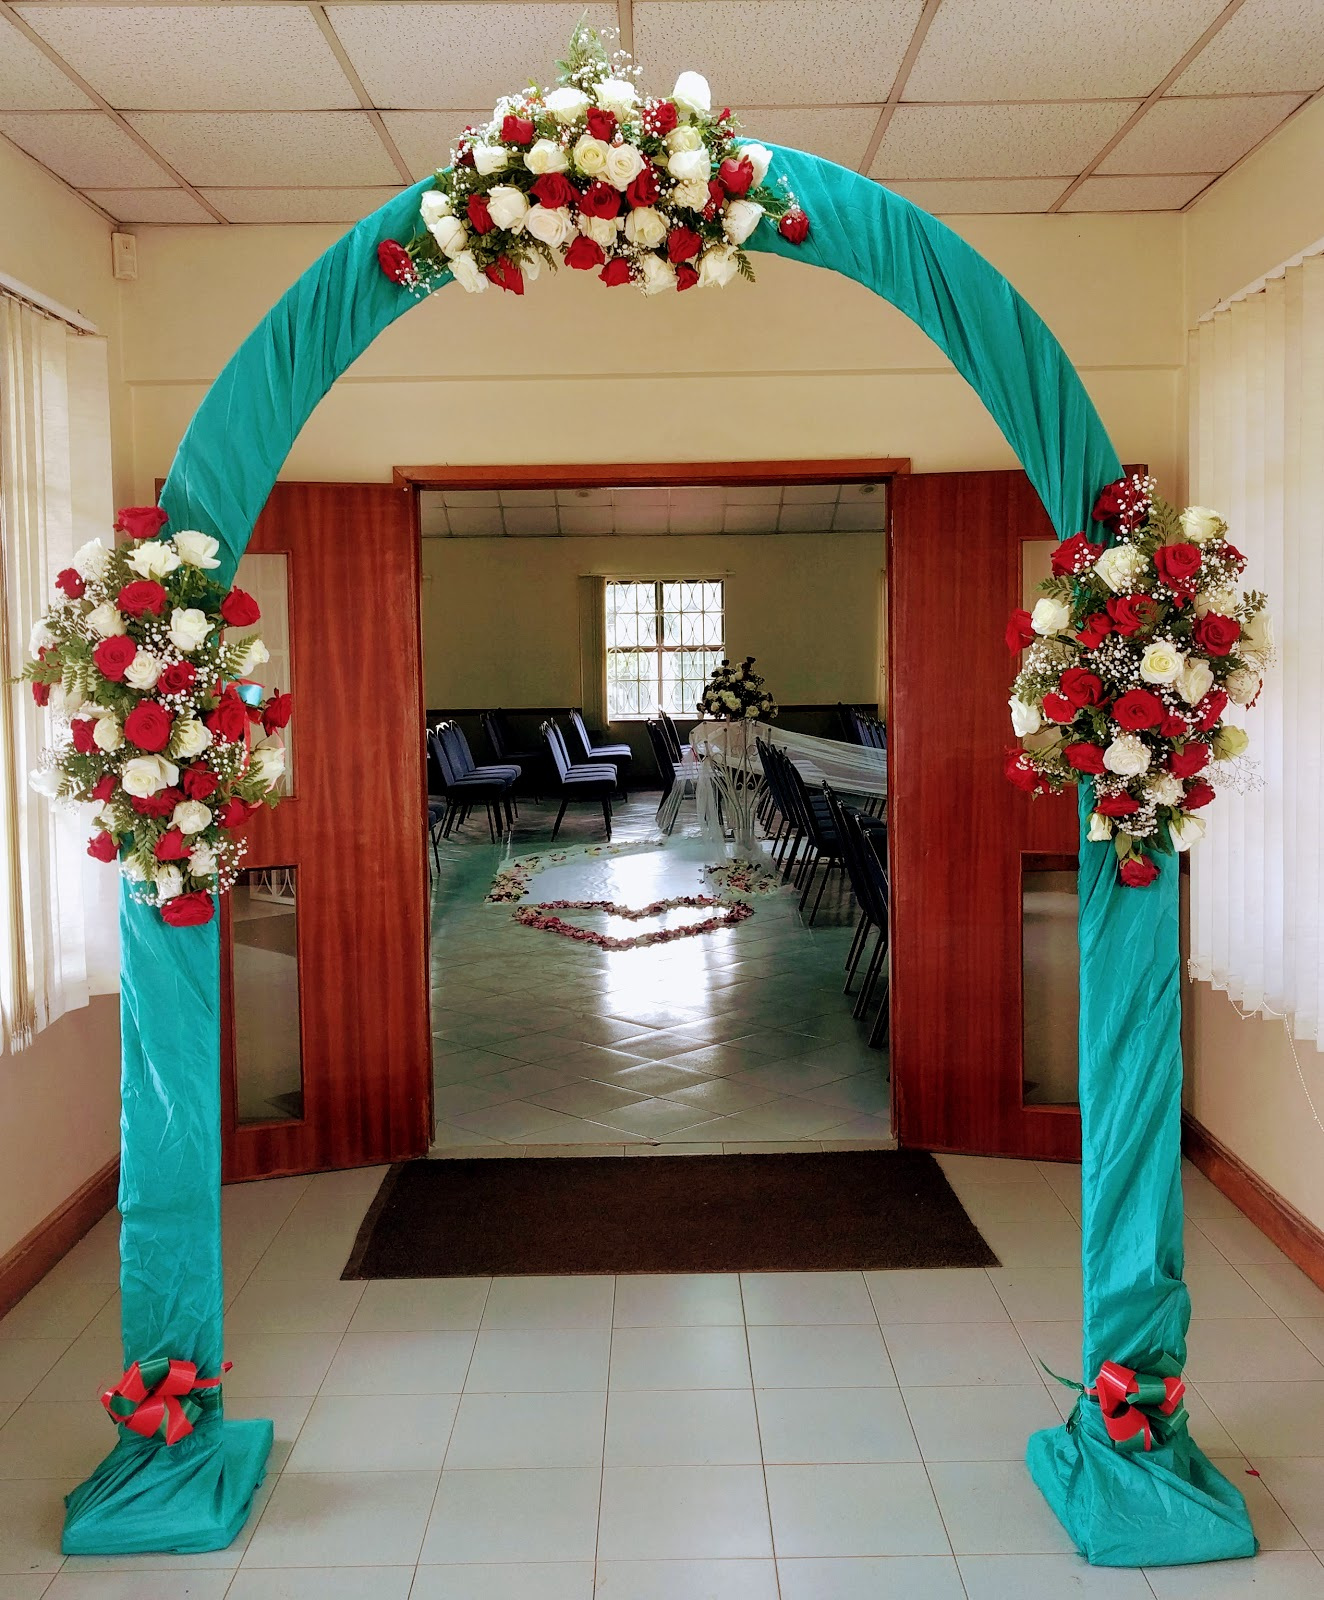 Nm a beautiful kenyan wedding one thing i realized probably features largely in kenyan weddings are these fabulous large flower arrangements it makes sense as many of the flowers junglespirit Gallery